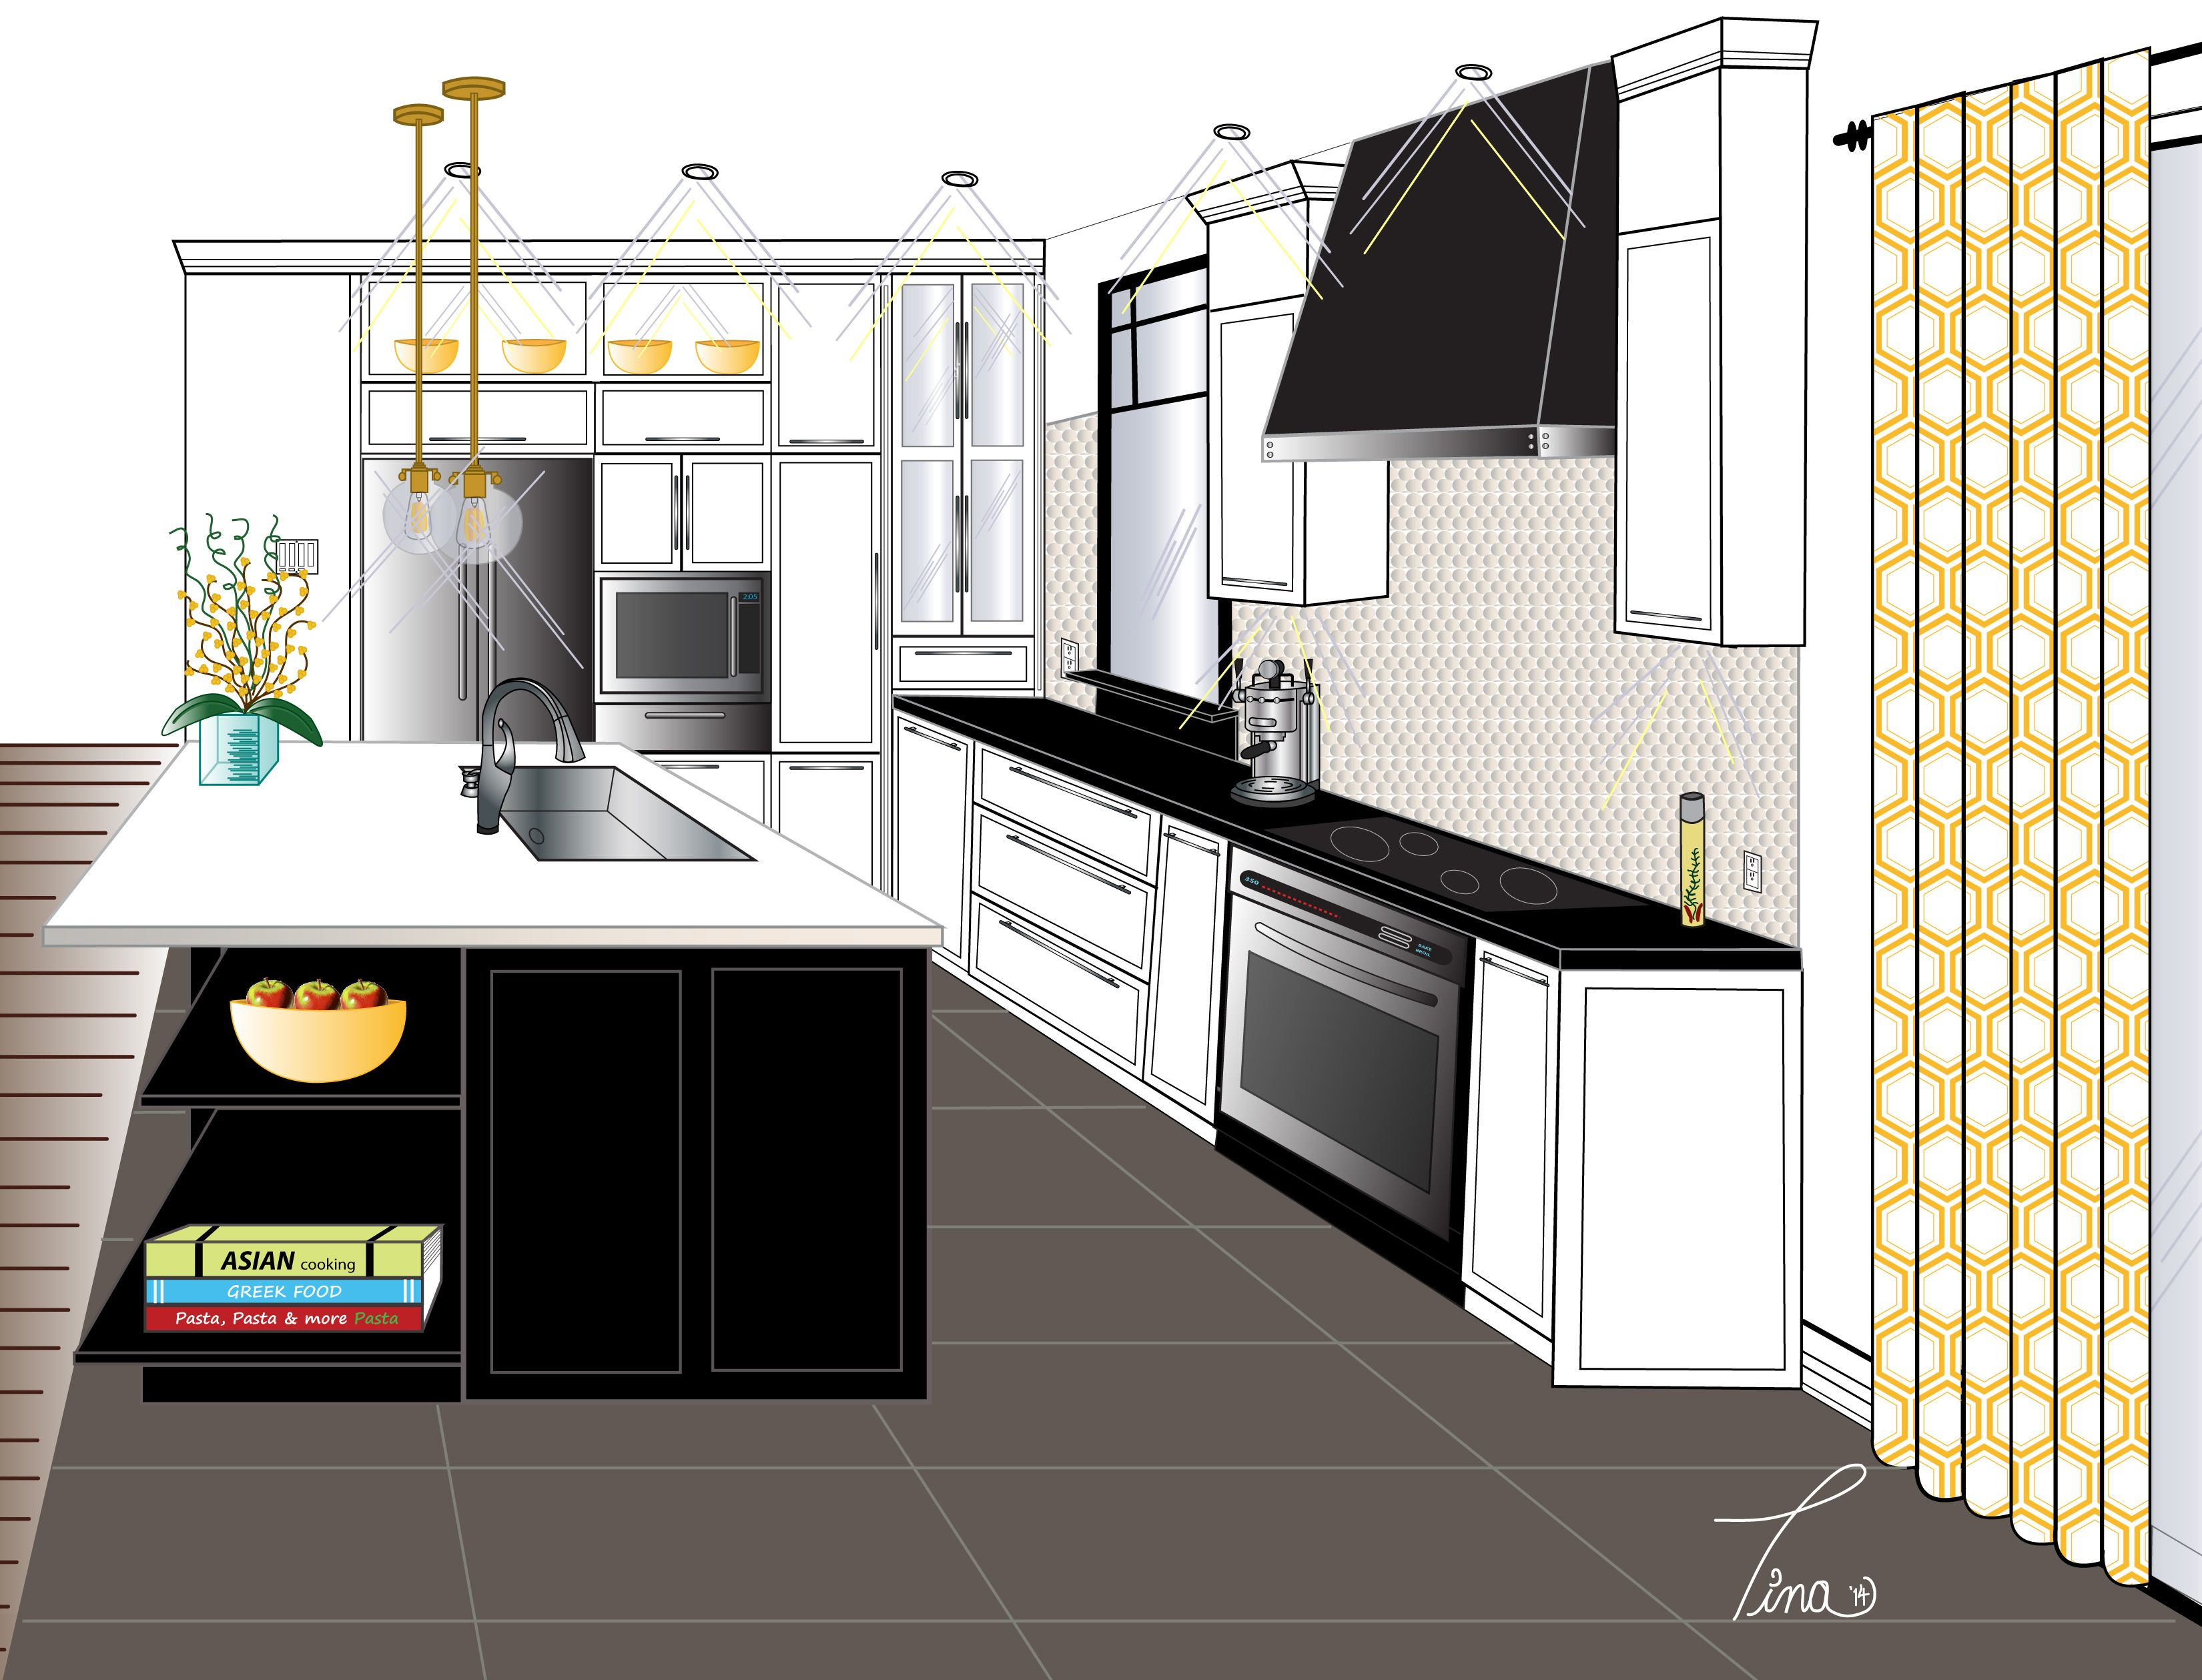 2 Point Perspective Contemporary Kitchen Final Rendering